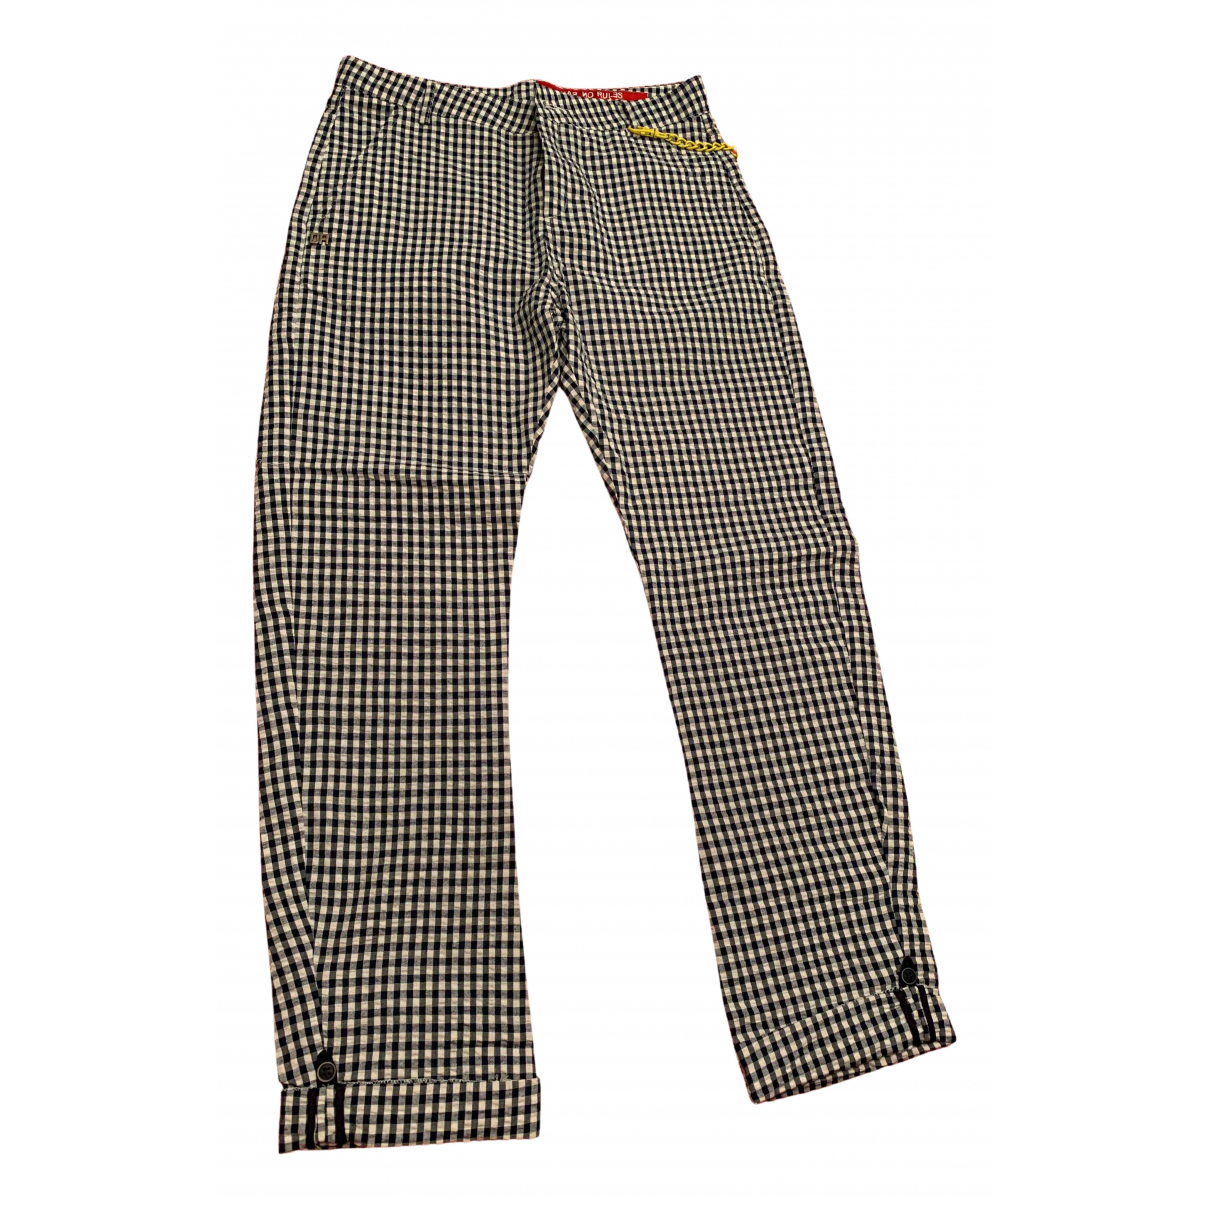 Daniele Alessandrini N White Cotton Trousers for Kids 14 years - S FR